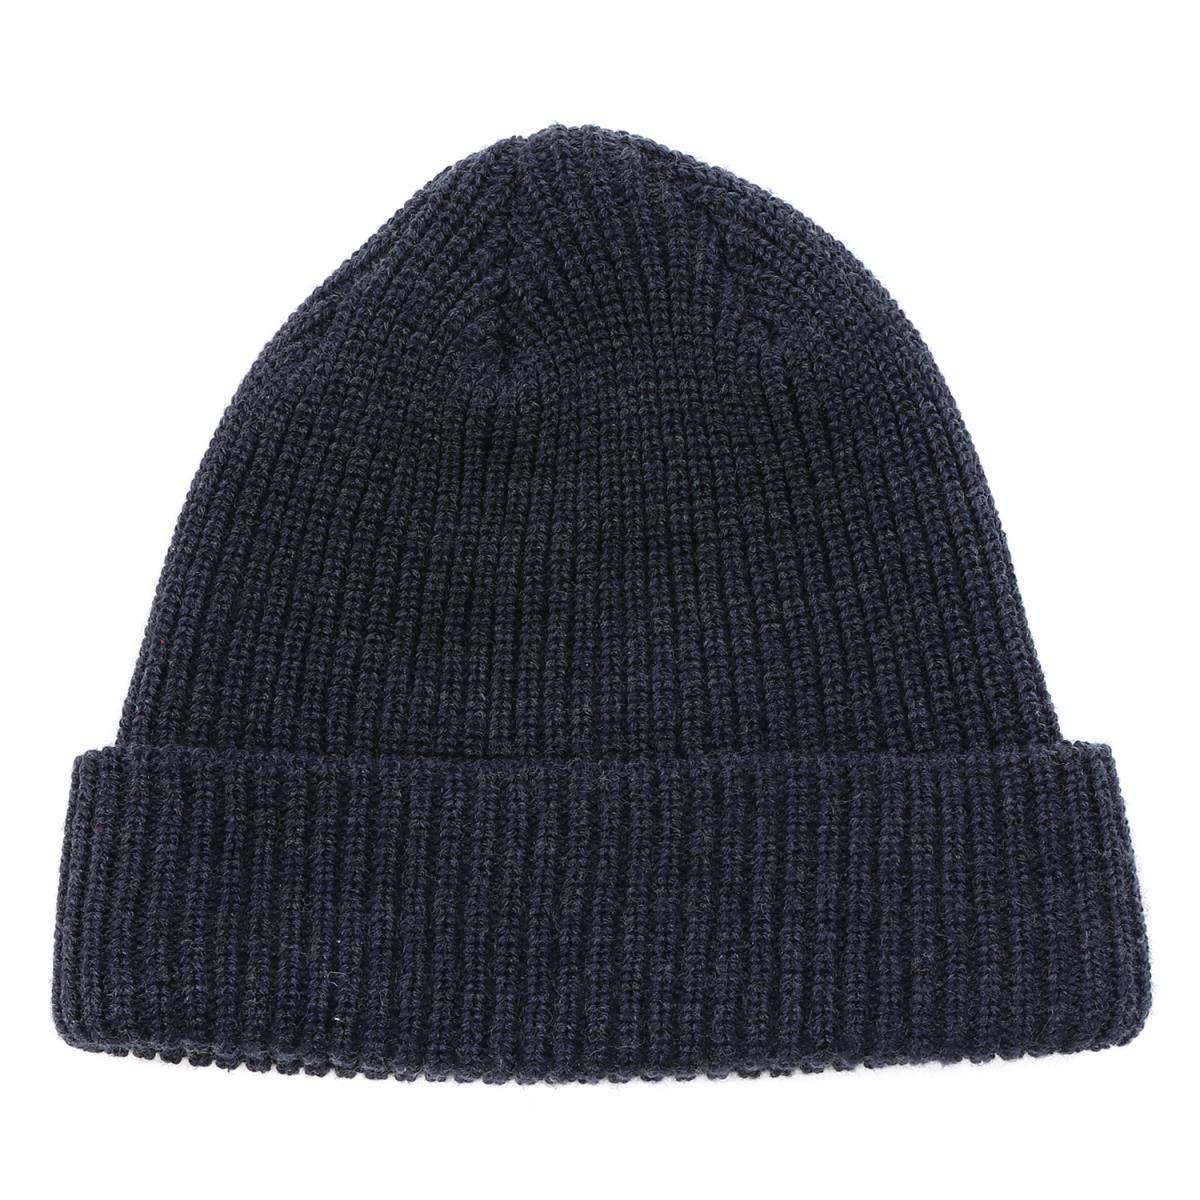 c6cfd7d7a Supreme (シュプリーム) 16A/W sloppy gauge acrylic beanie (Heather Loose Gauge  Beanie) navy